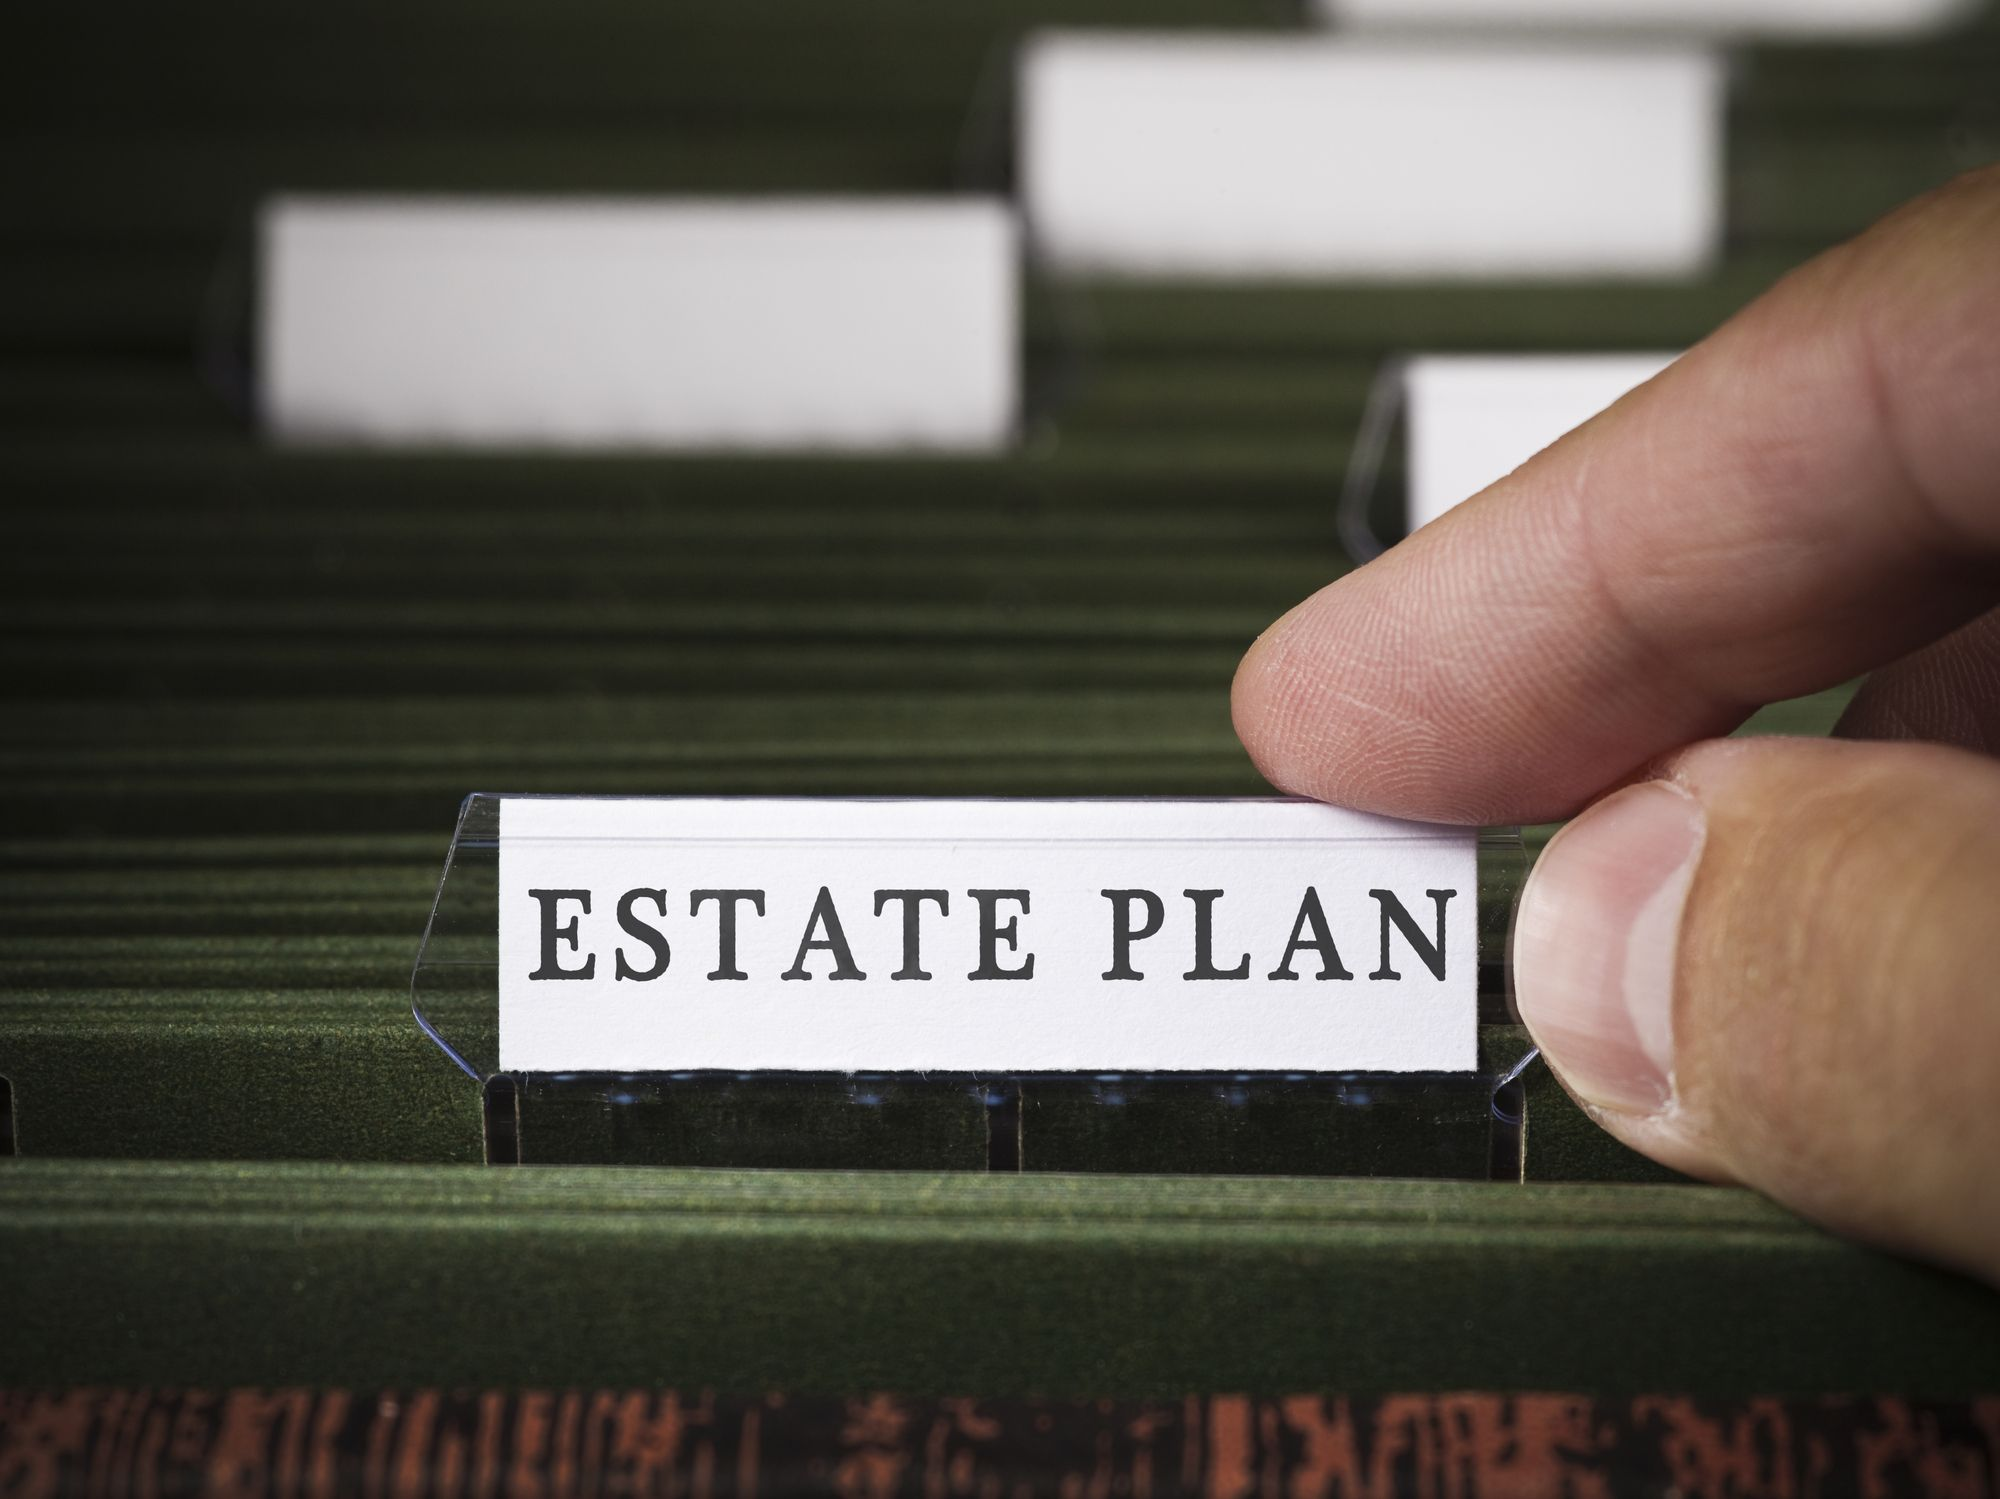 An estate plan file